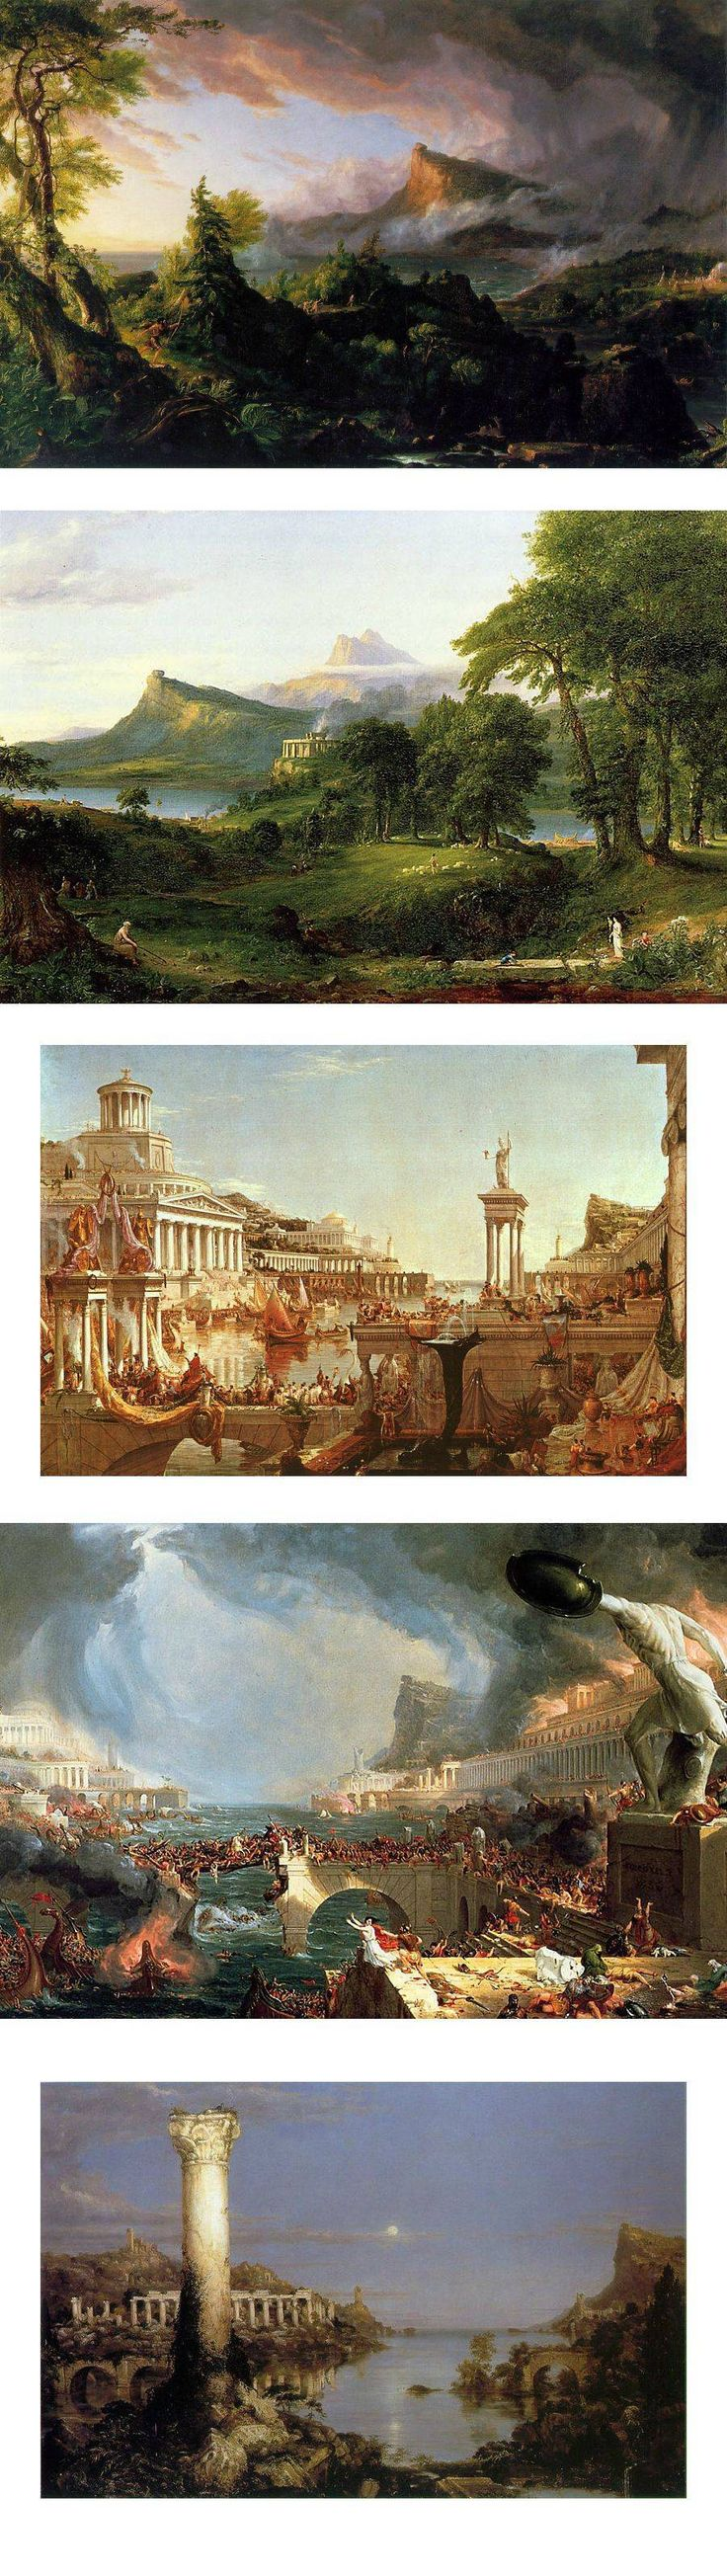 The Course of Empire by Thomas Cole. Having all five together in the same pin gives more impact to the meaning of the series.    One of my favourite paintings on the evolution and progress of civilisation.